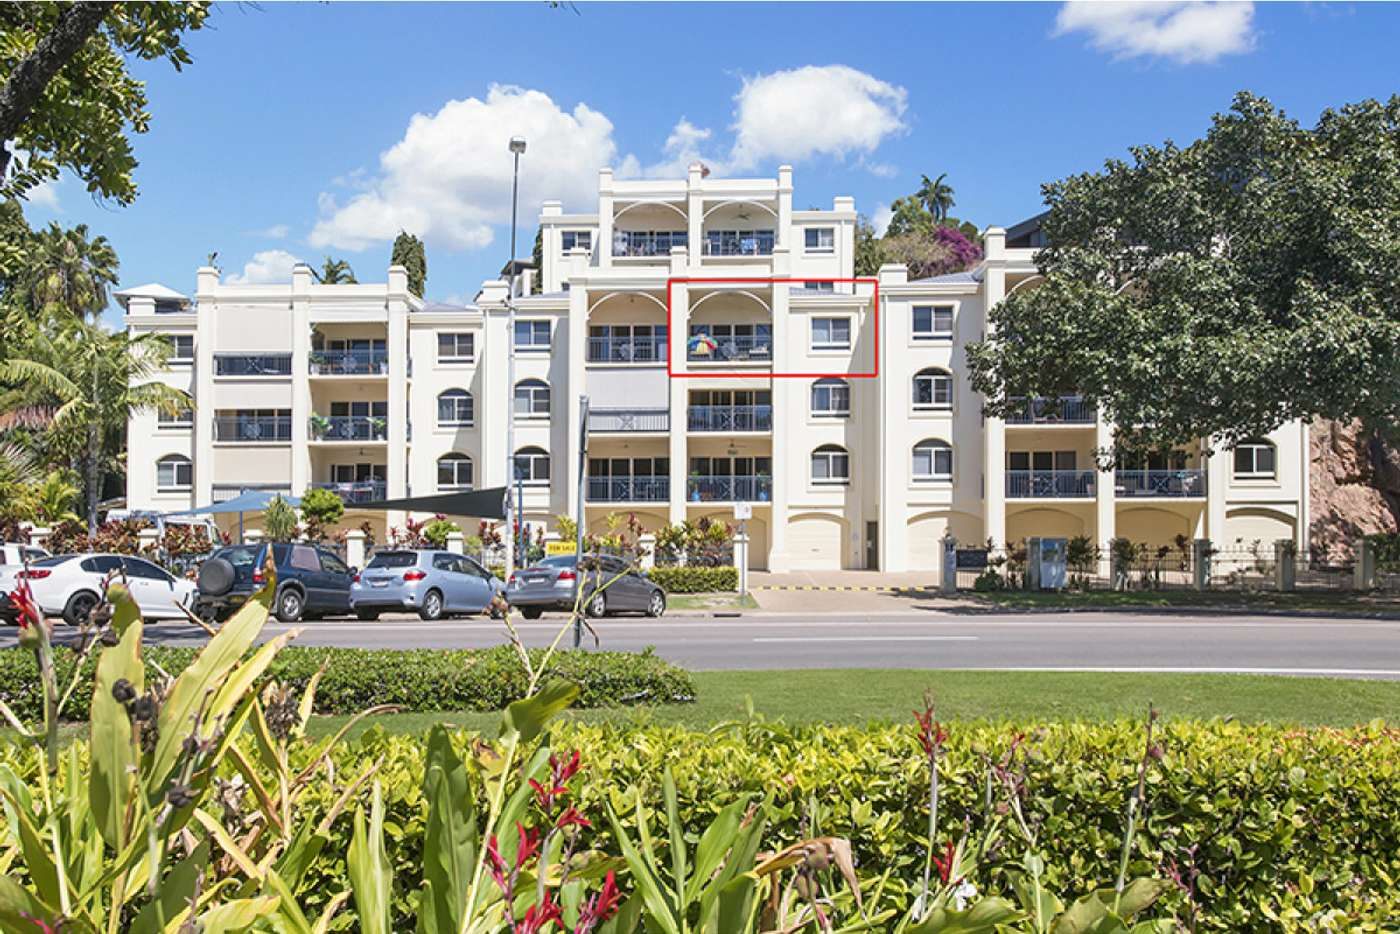 Main view of Homely apartment listing, 16/18 The Strand, North Ward QLD 4810